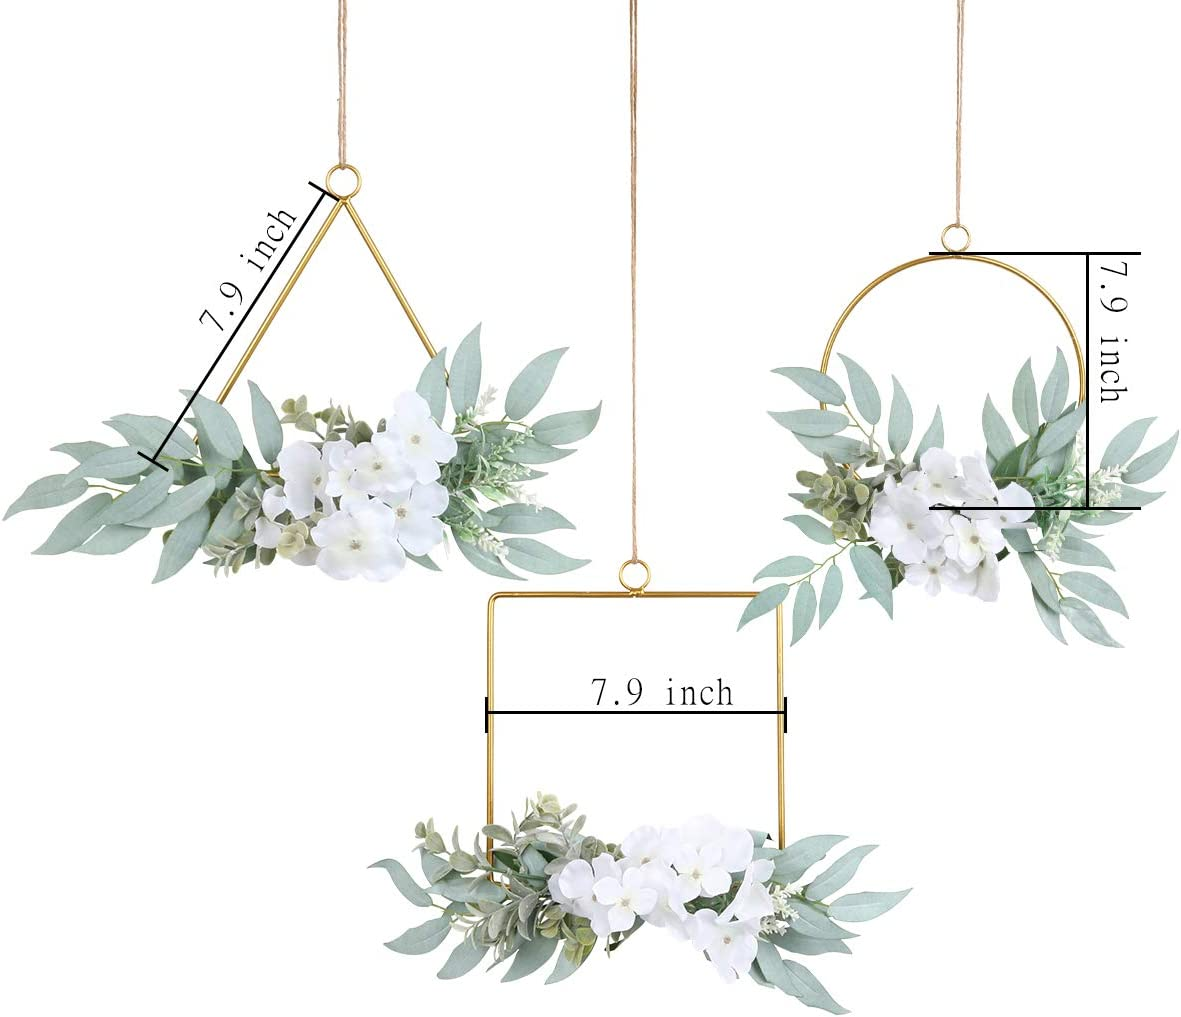 Pauwer Artificial Willow Leaves Metal Hoop Wreath Set of 3 Willow Leaves Greenery with White Silk Hydrangea Flower Hanging Wall Hoop Garland